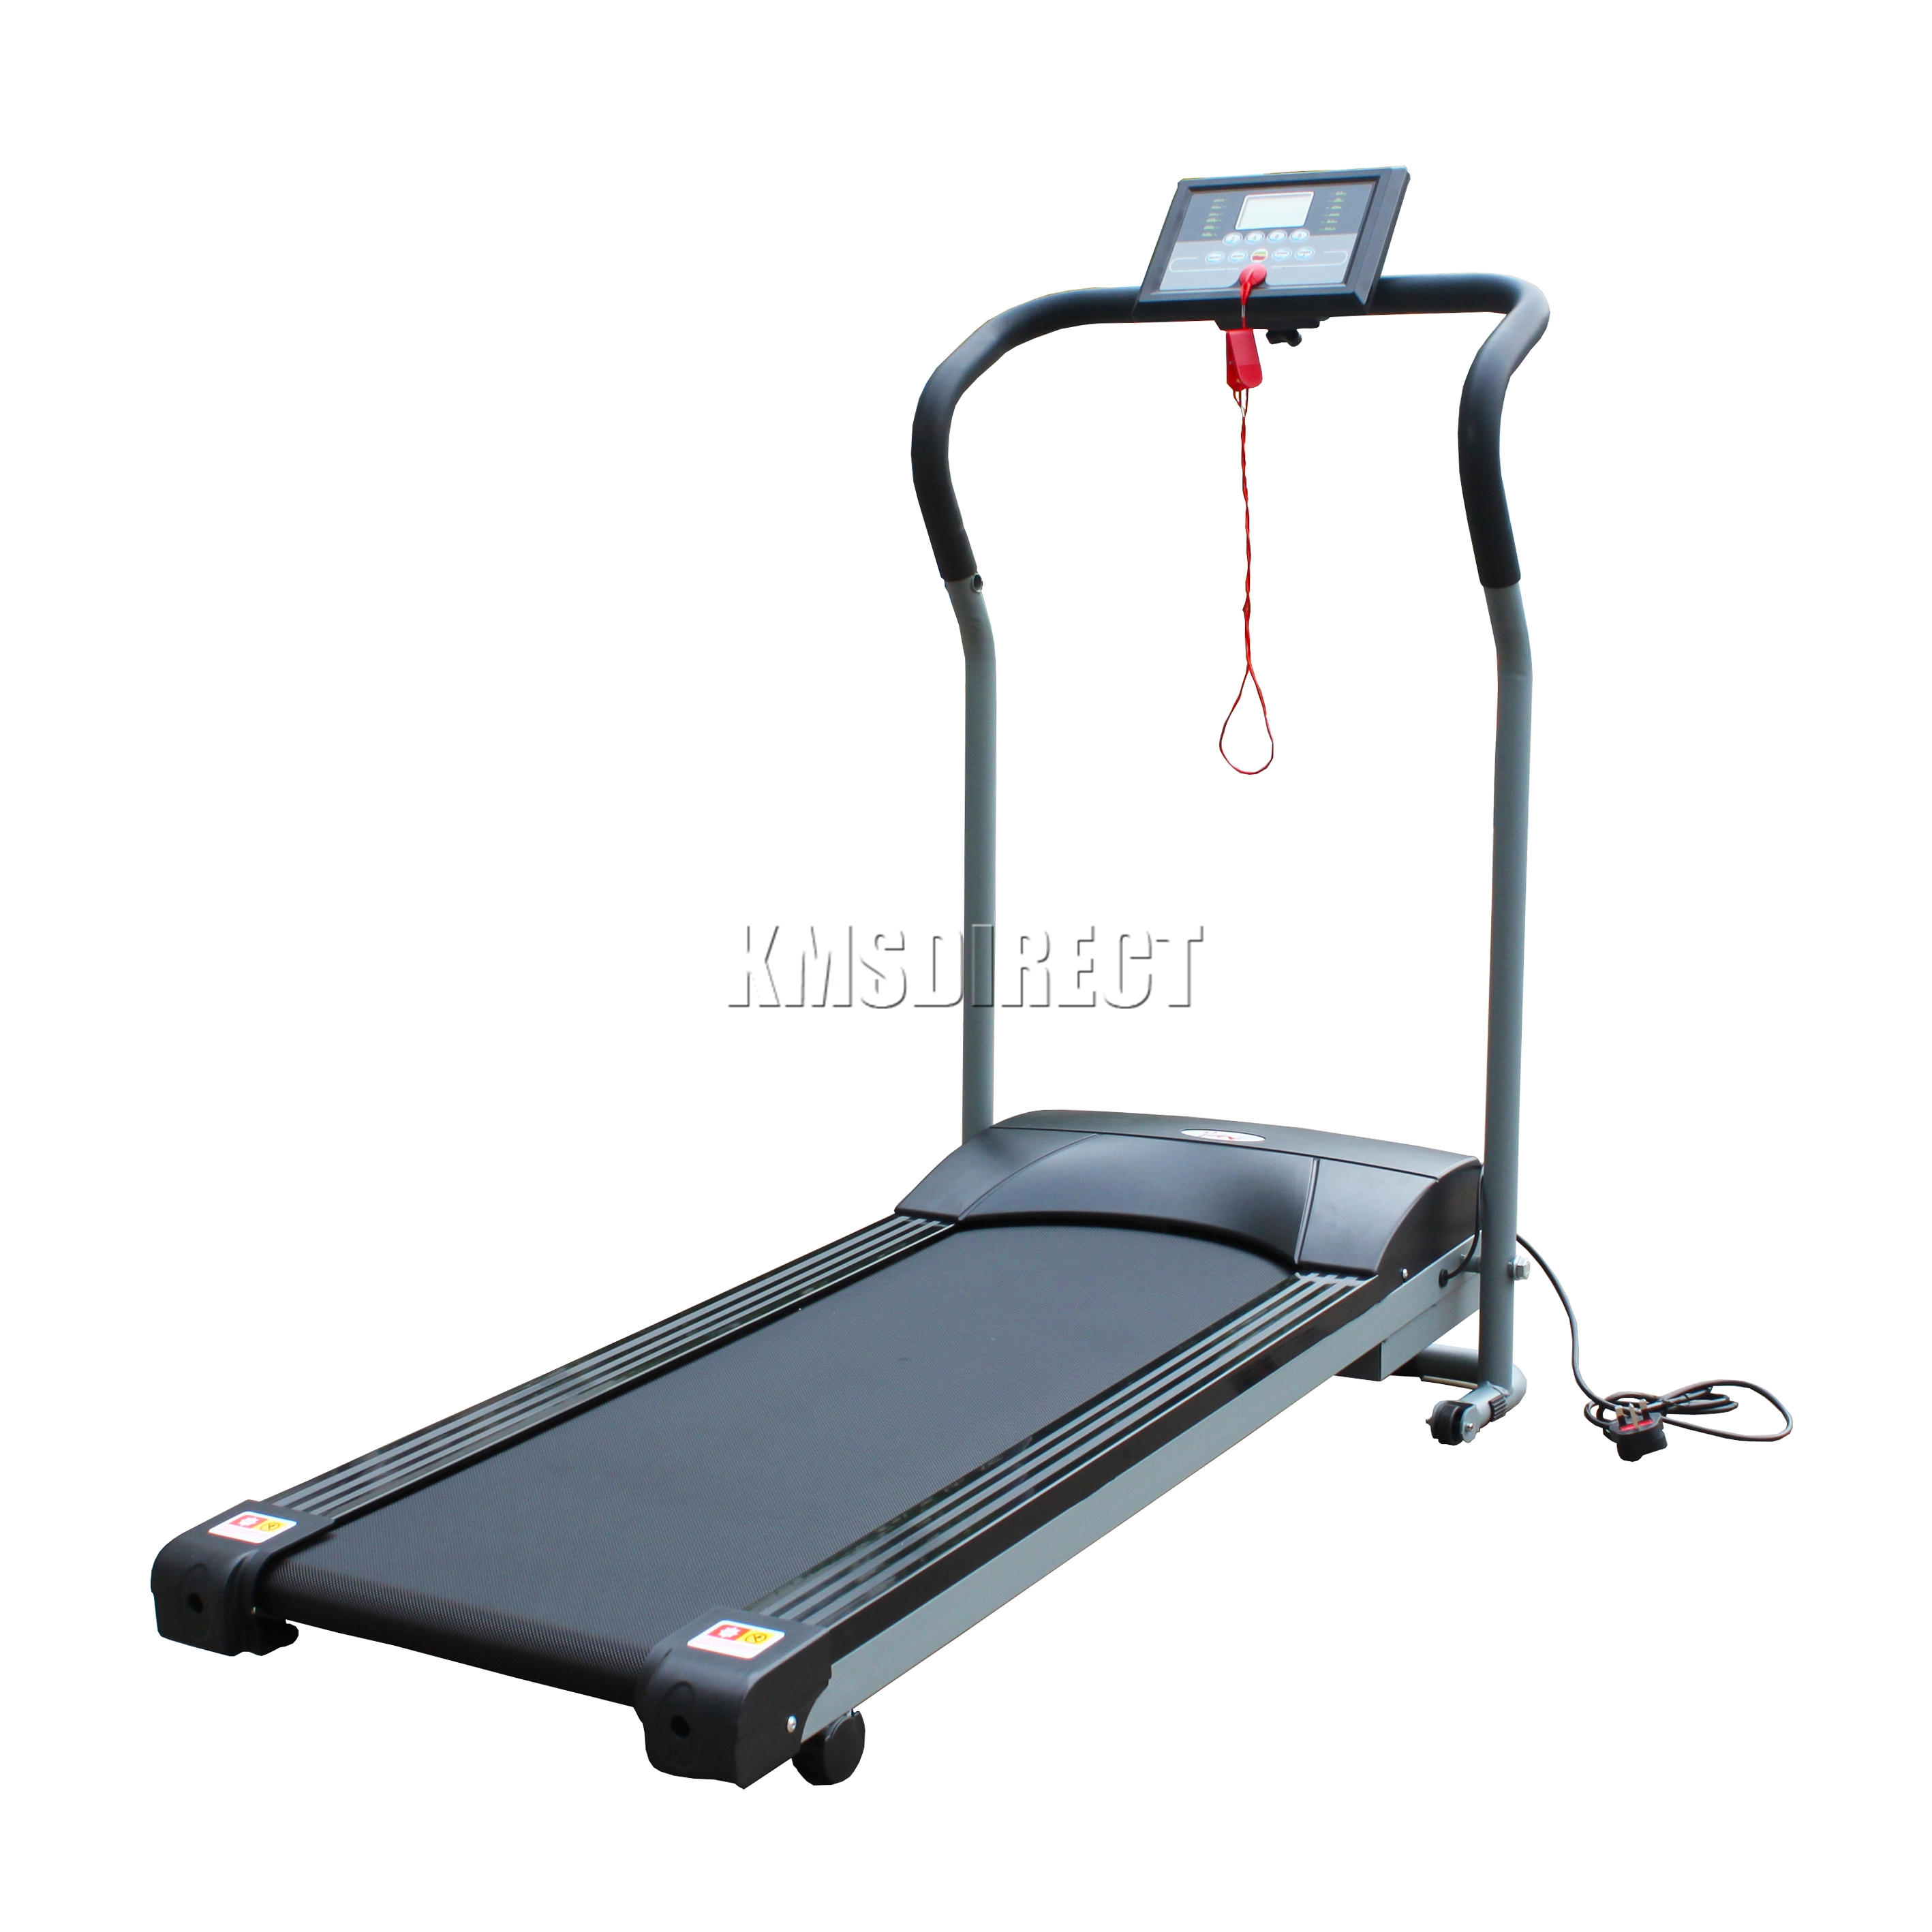 Life Fitness Treadmill Low Voltage: FoxHunter Folding Motorized Electric Treadmill Running